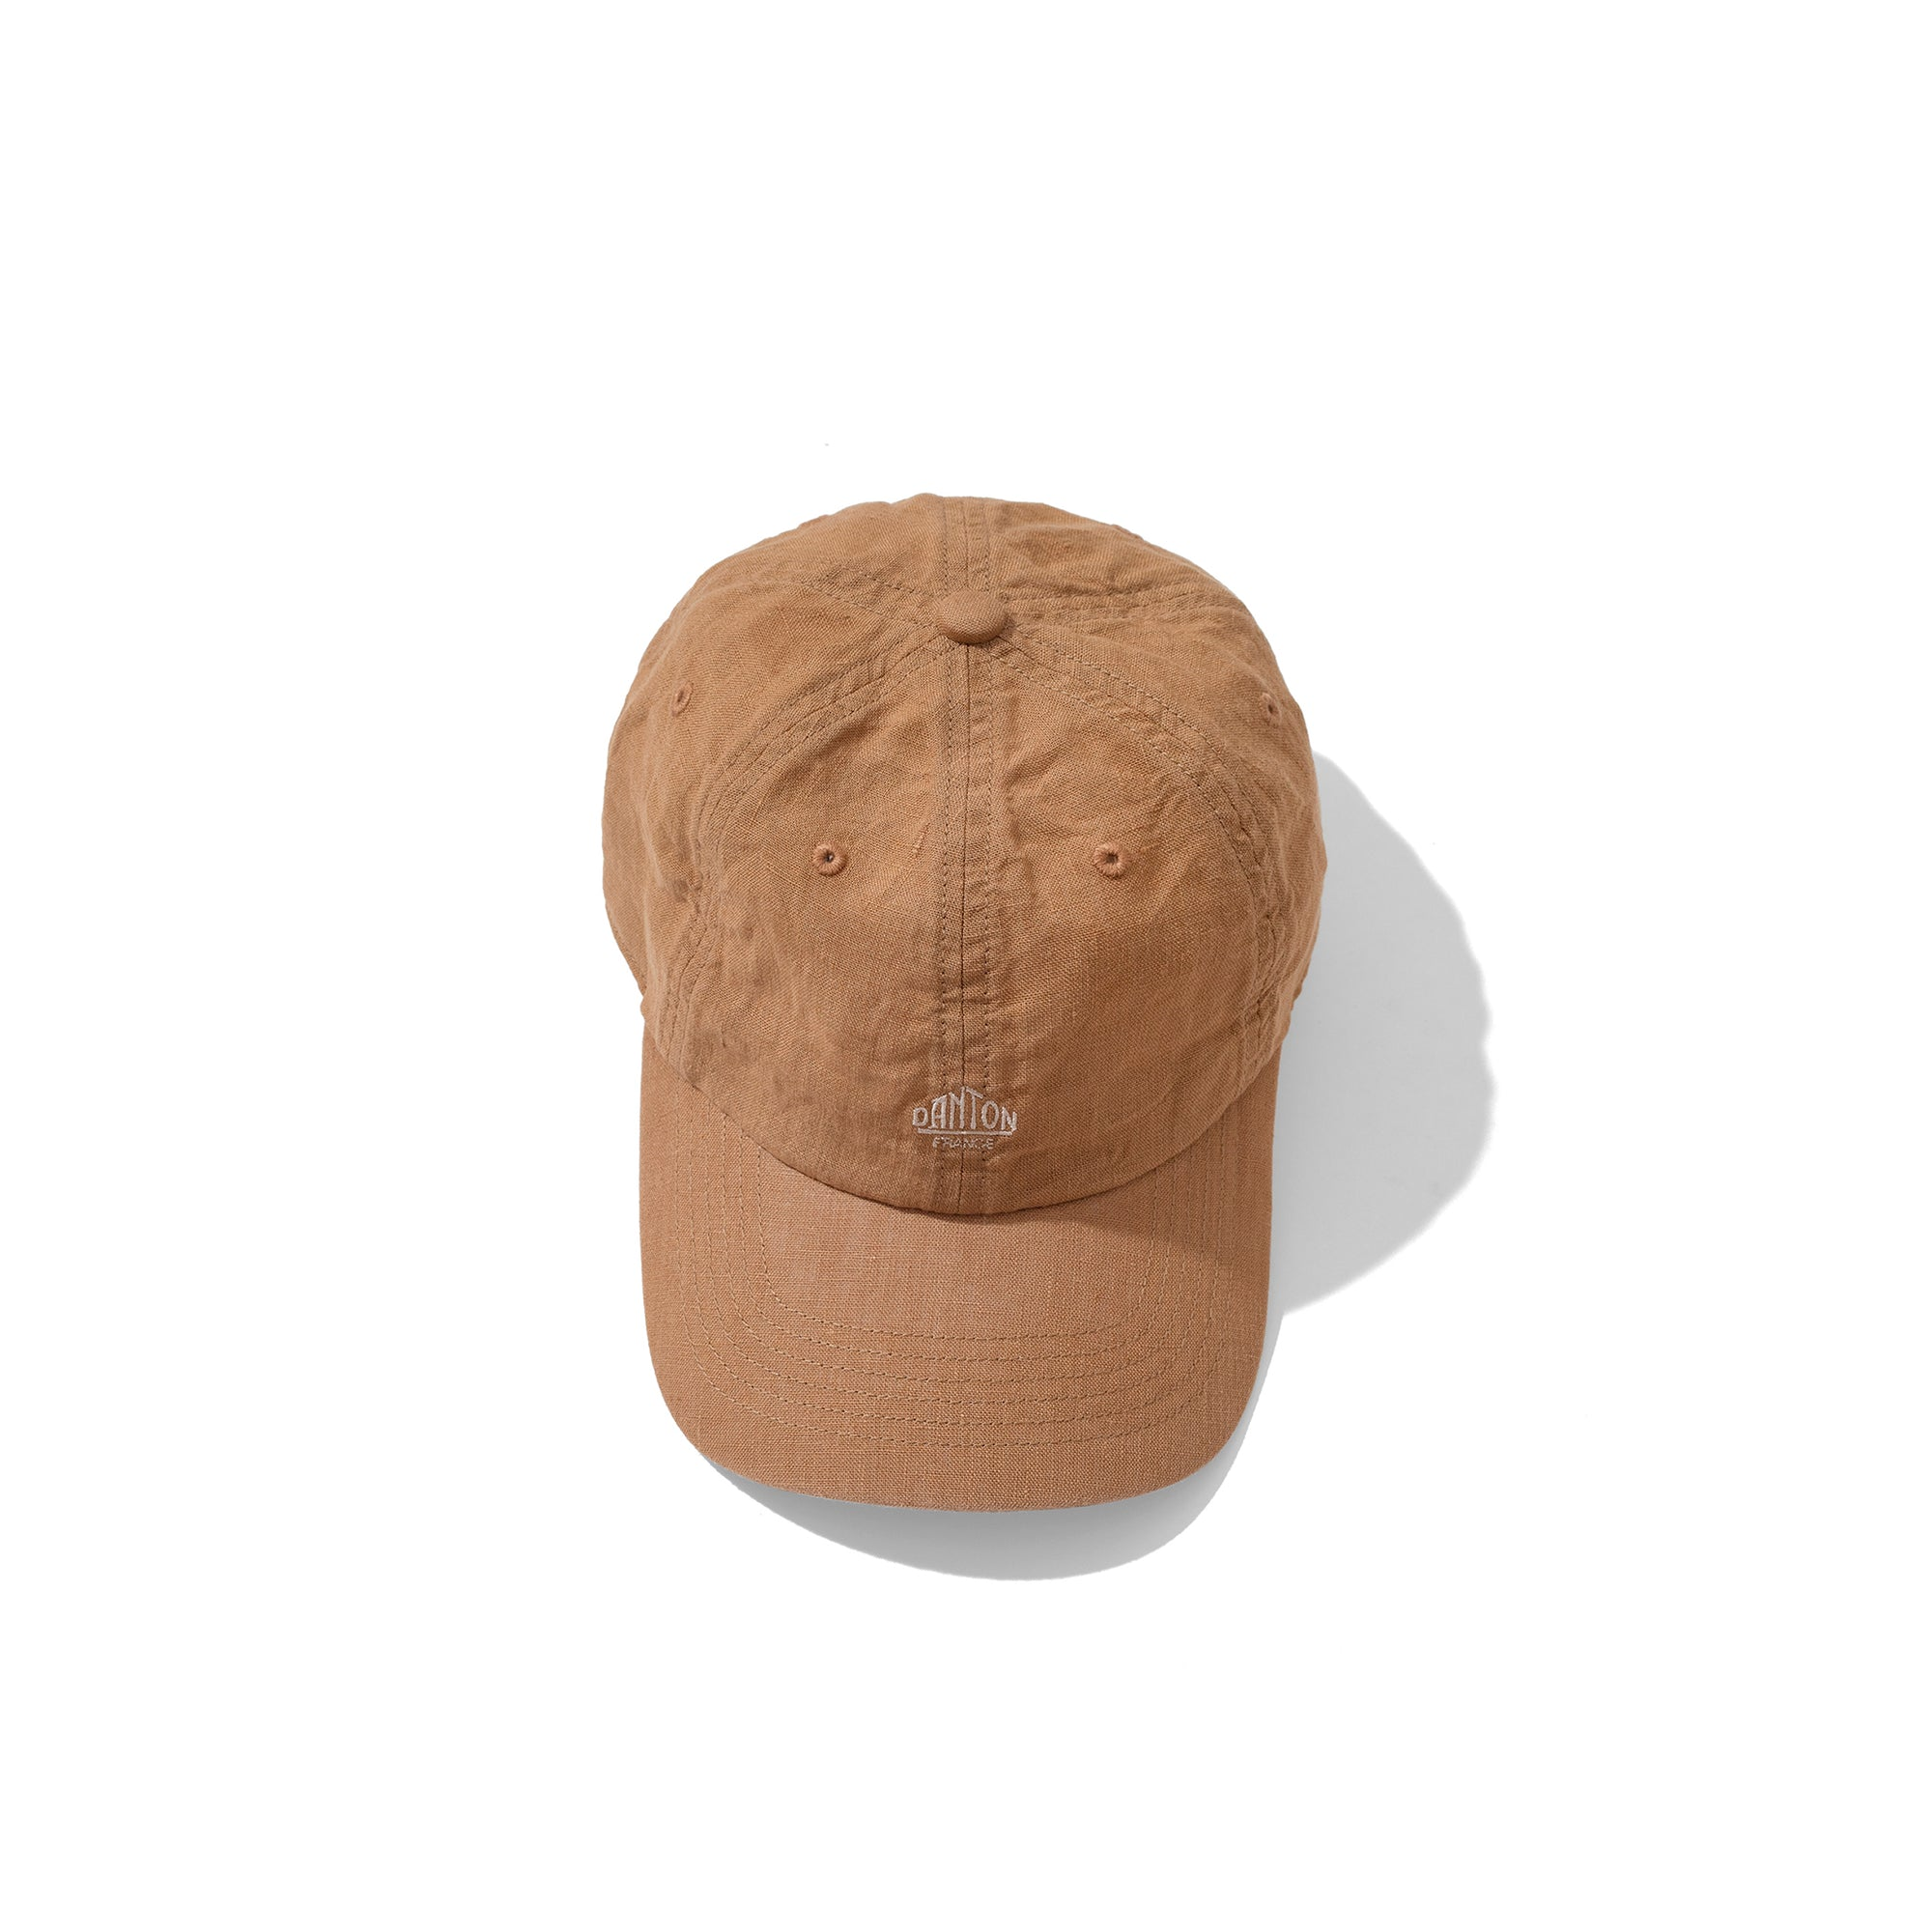 Danton Linen Cap: Beige - The Union Project